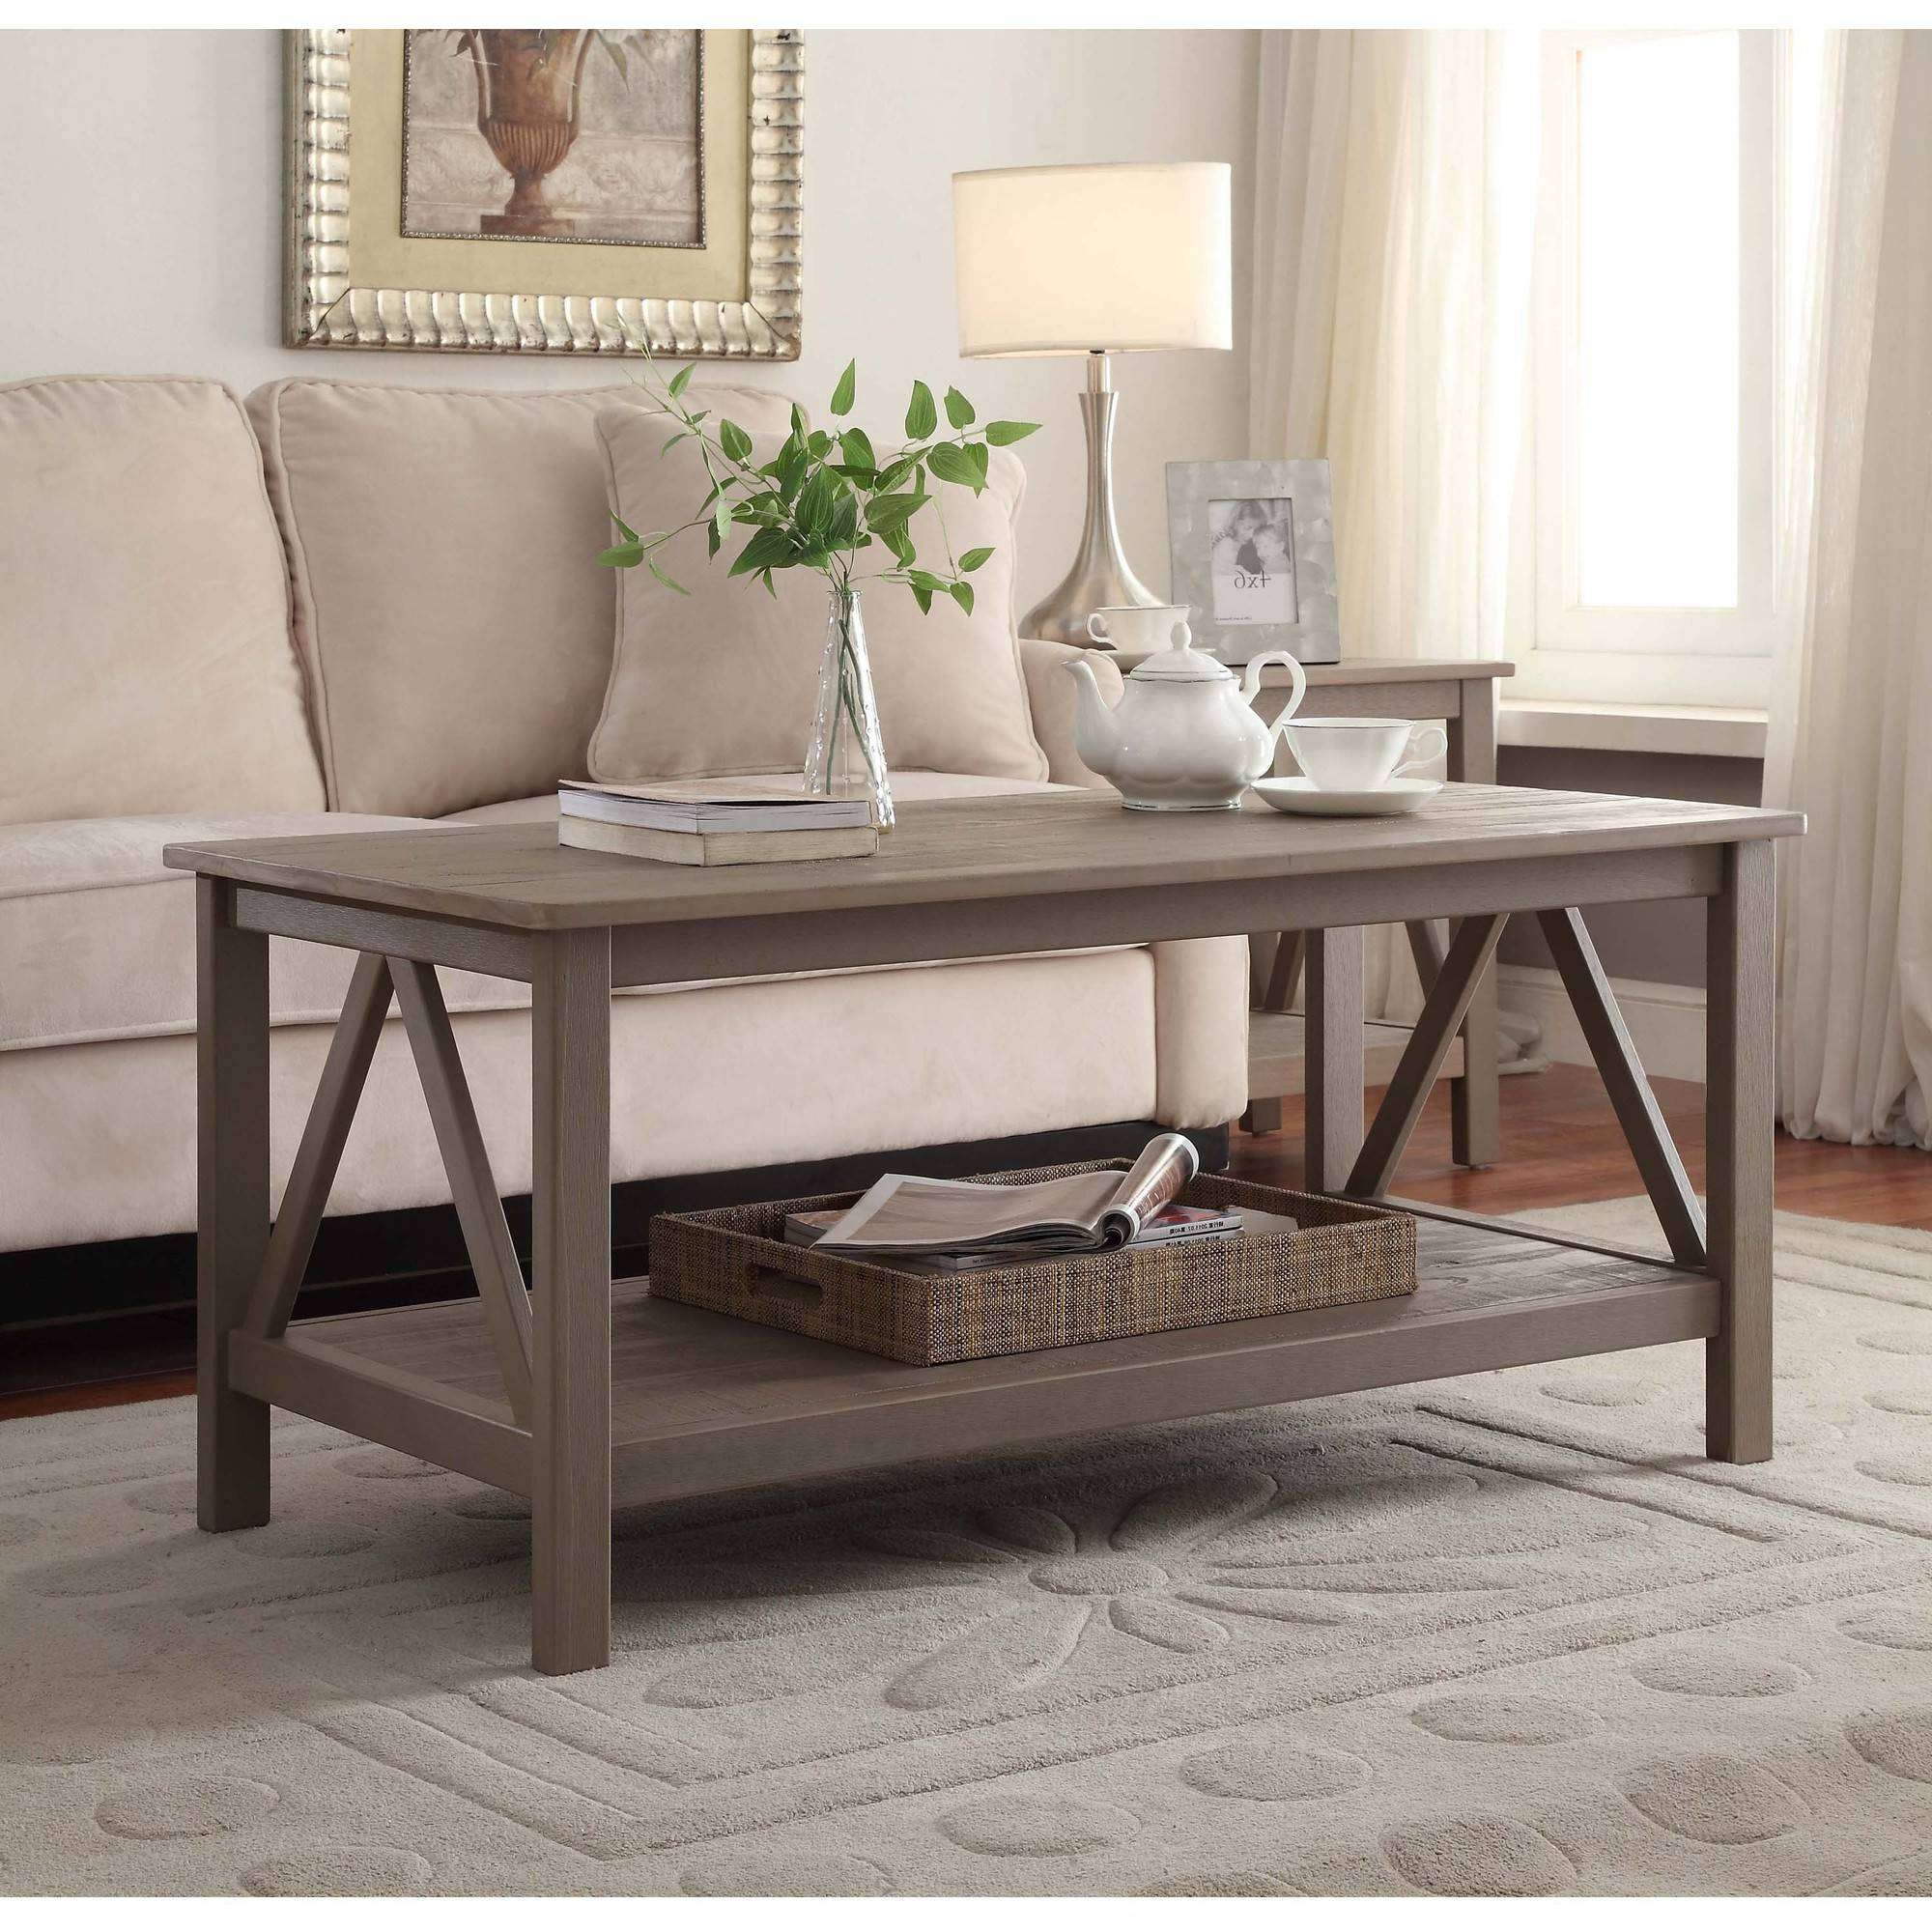 Most Recent Grey Coffee Tables With Regard To Linon Titian Coffee Table, Rustic Gray, 20 Inches Tall – Walmart (View 14 of 20)